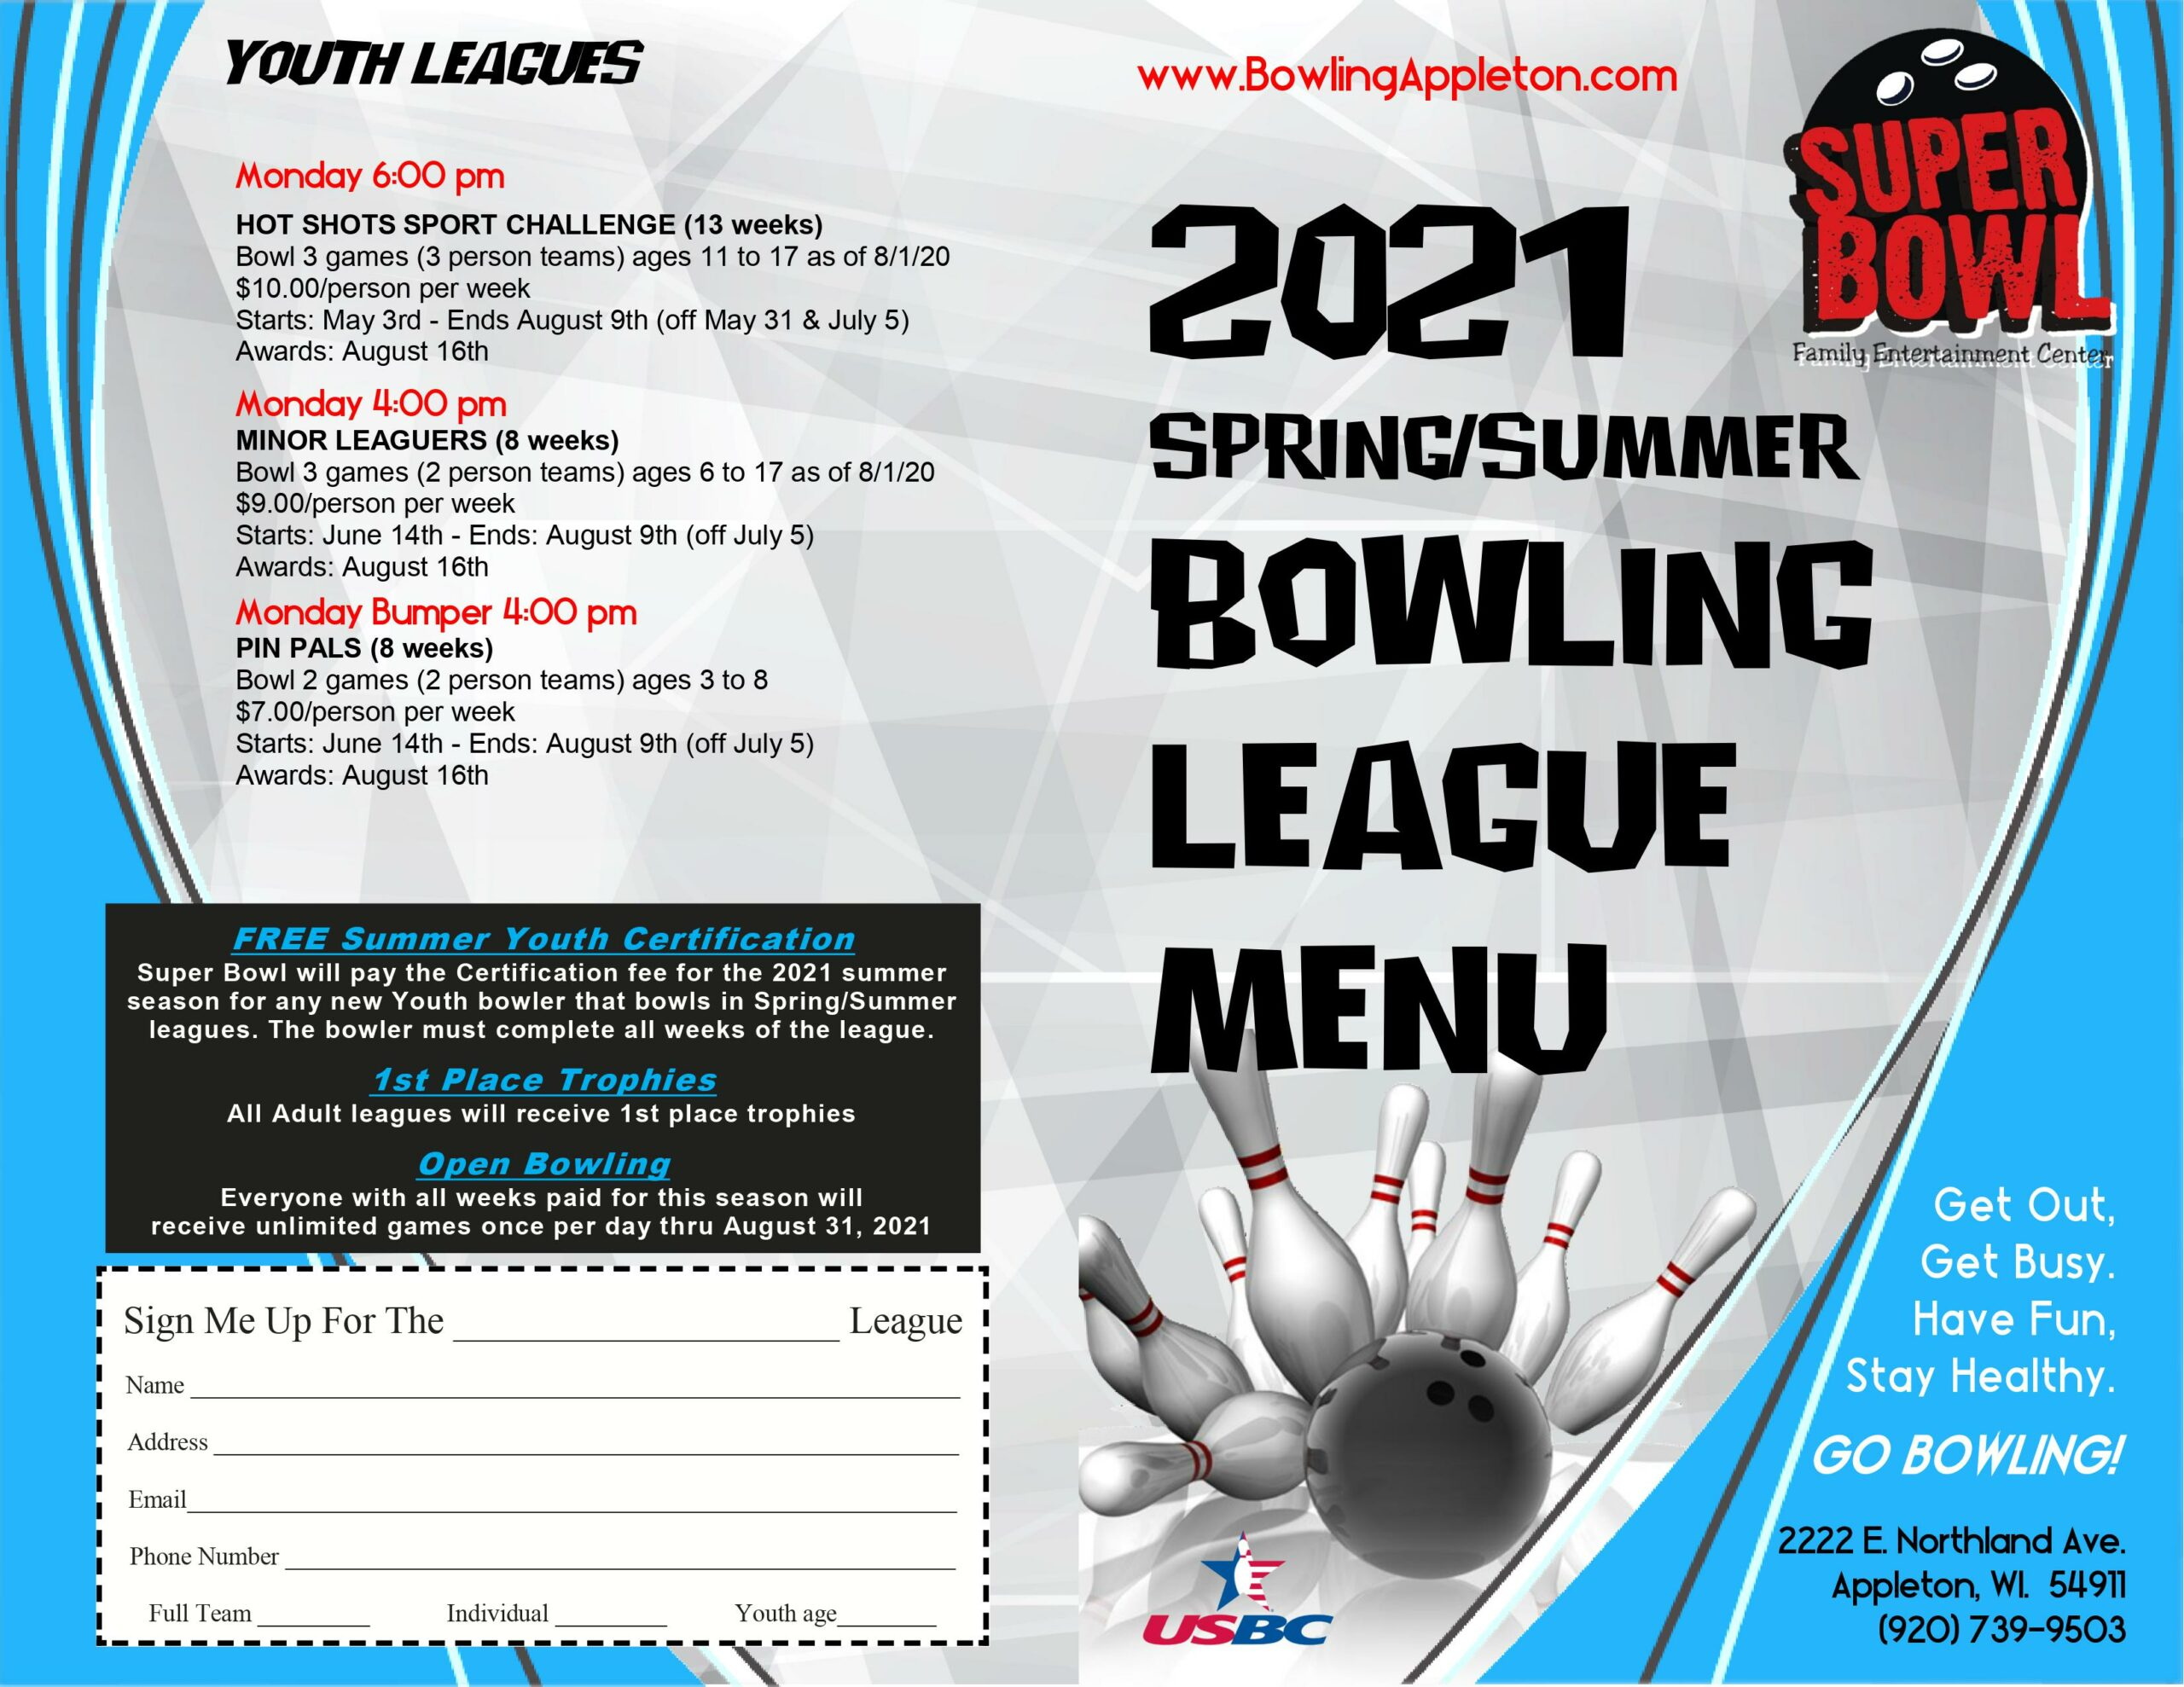 Spring/Summer 2021 bowling leagues | youth leagues | youth bowling leagues | Appleton bowling leagues | Super Bowl